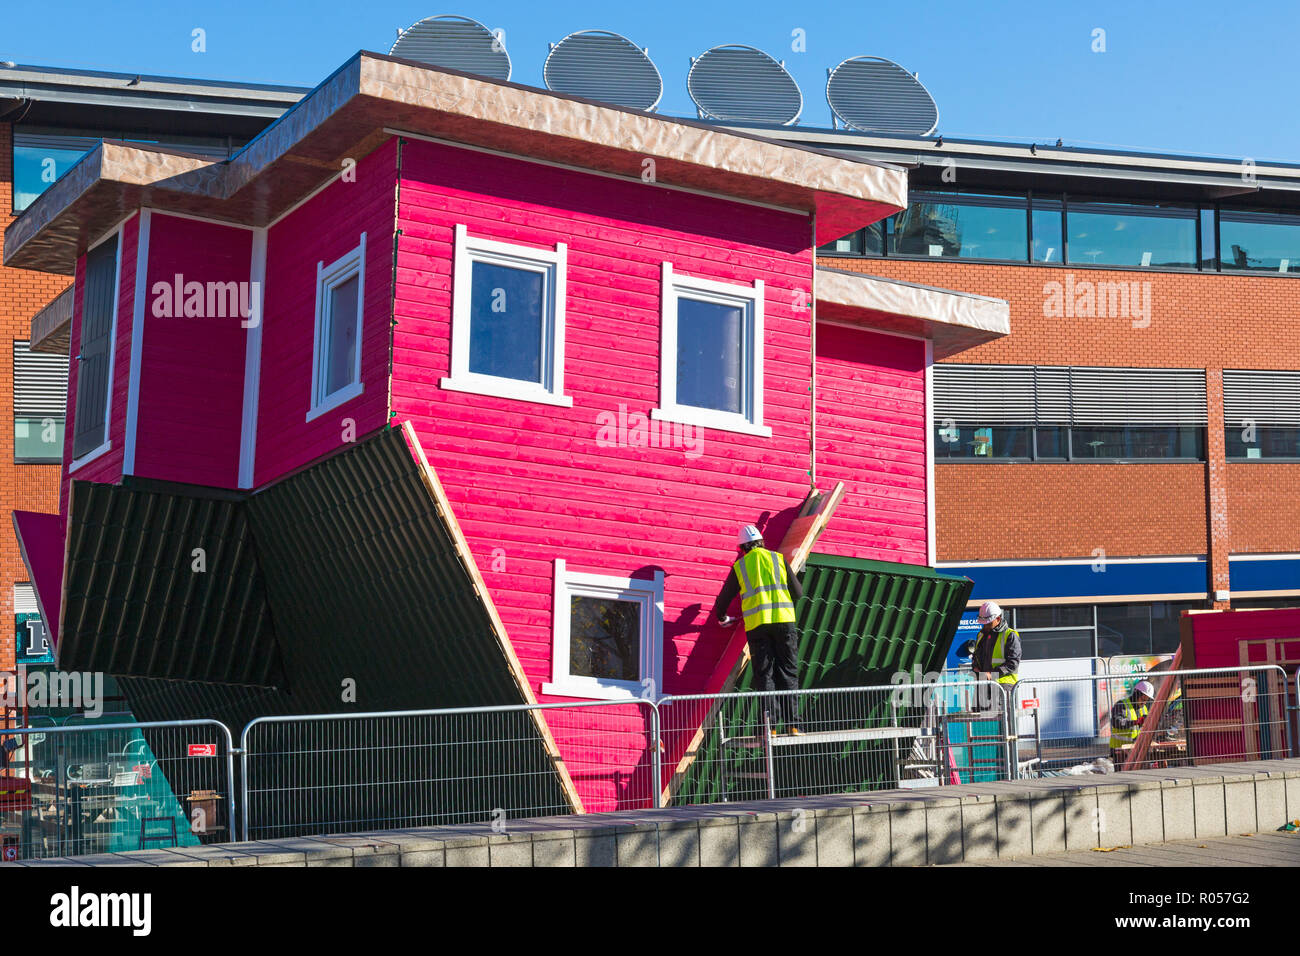 Bournemouth, Dorset, UK. 2nd Nov, 2018. The first upside down topsy turvy house is being assembled in Bournemouth as part of the towns Christmas Experience. Visitors will get the chance to venture inside and defy gravity! Credit: Carolyn Jenkins/Alamy Live News - Stock Image